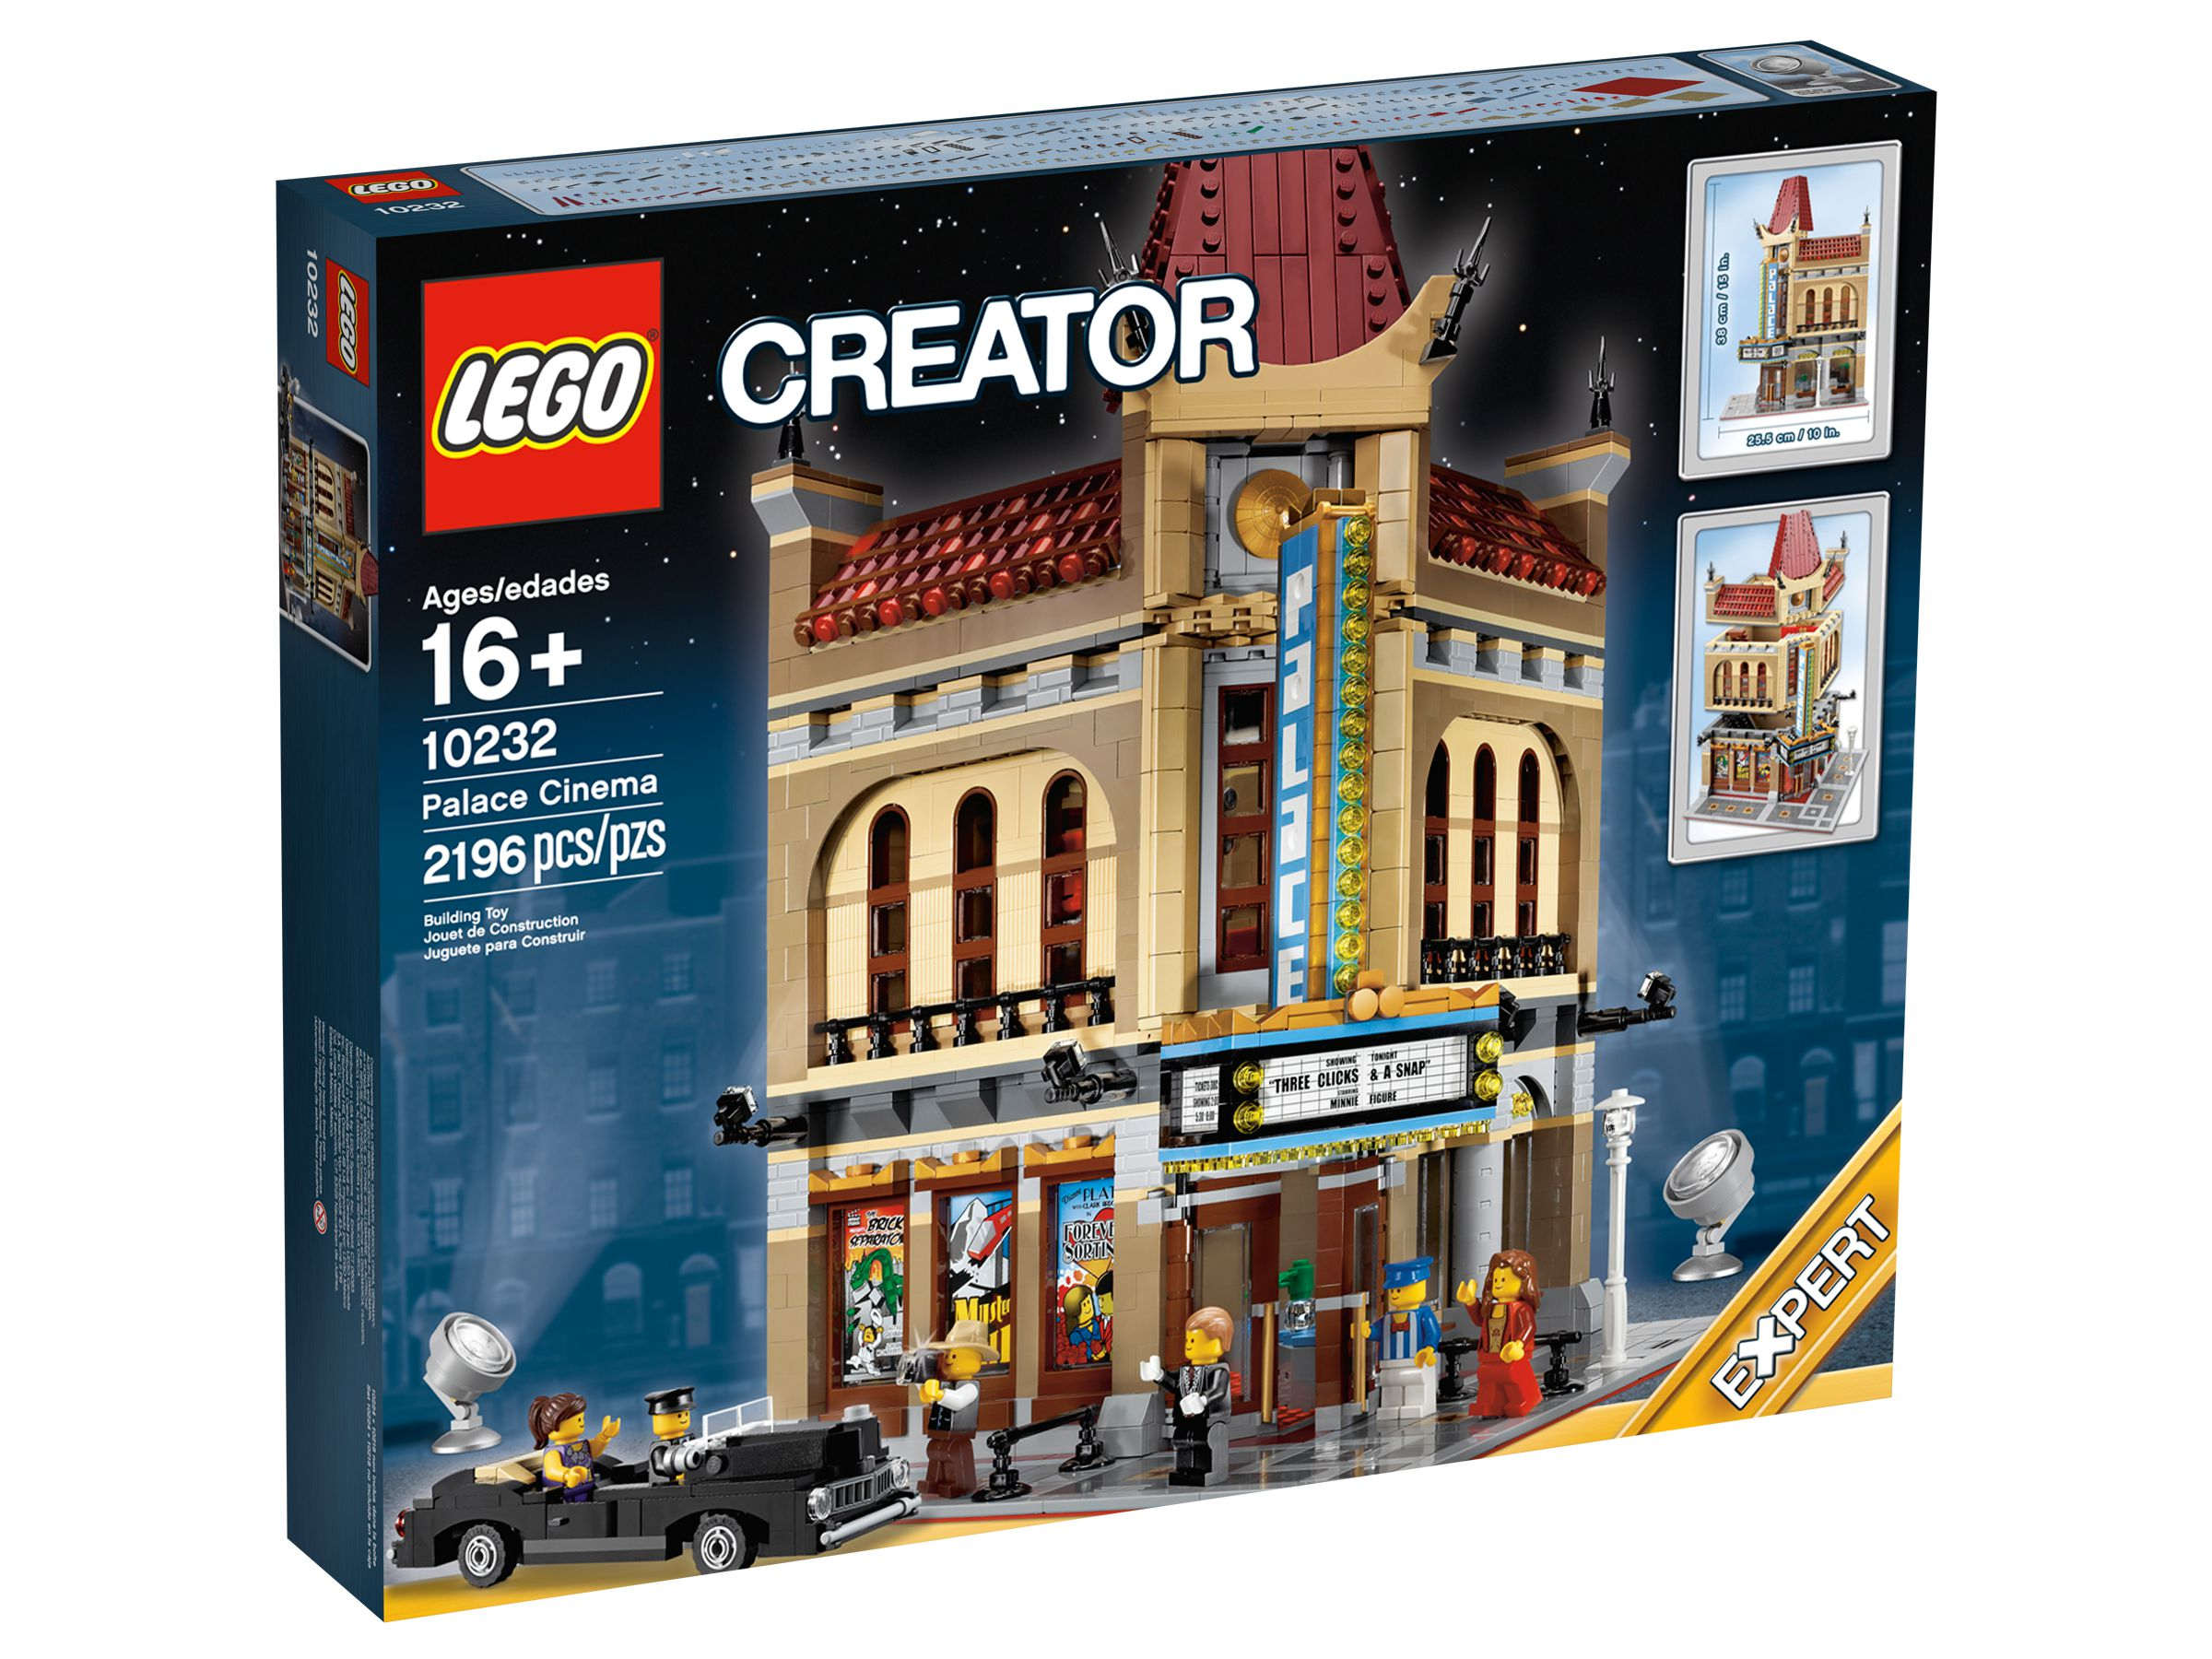 LEGO Advanced Models 10232 Palace Cinema LEGO_10232_alt1.jpg